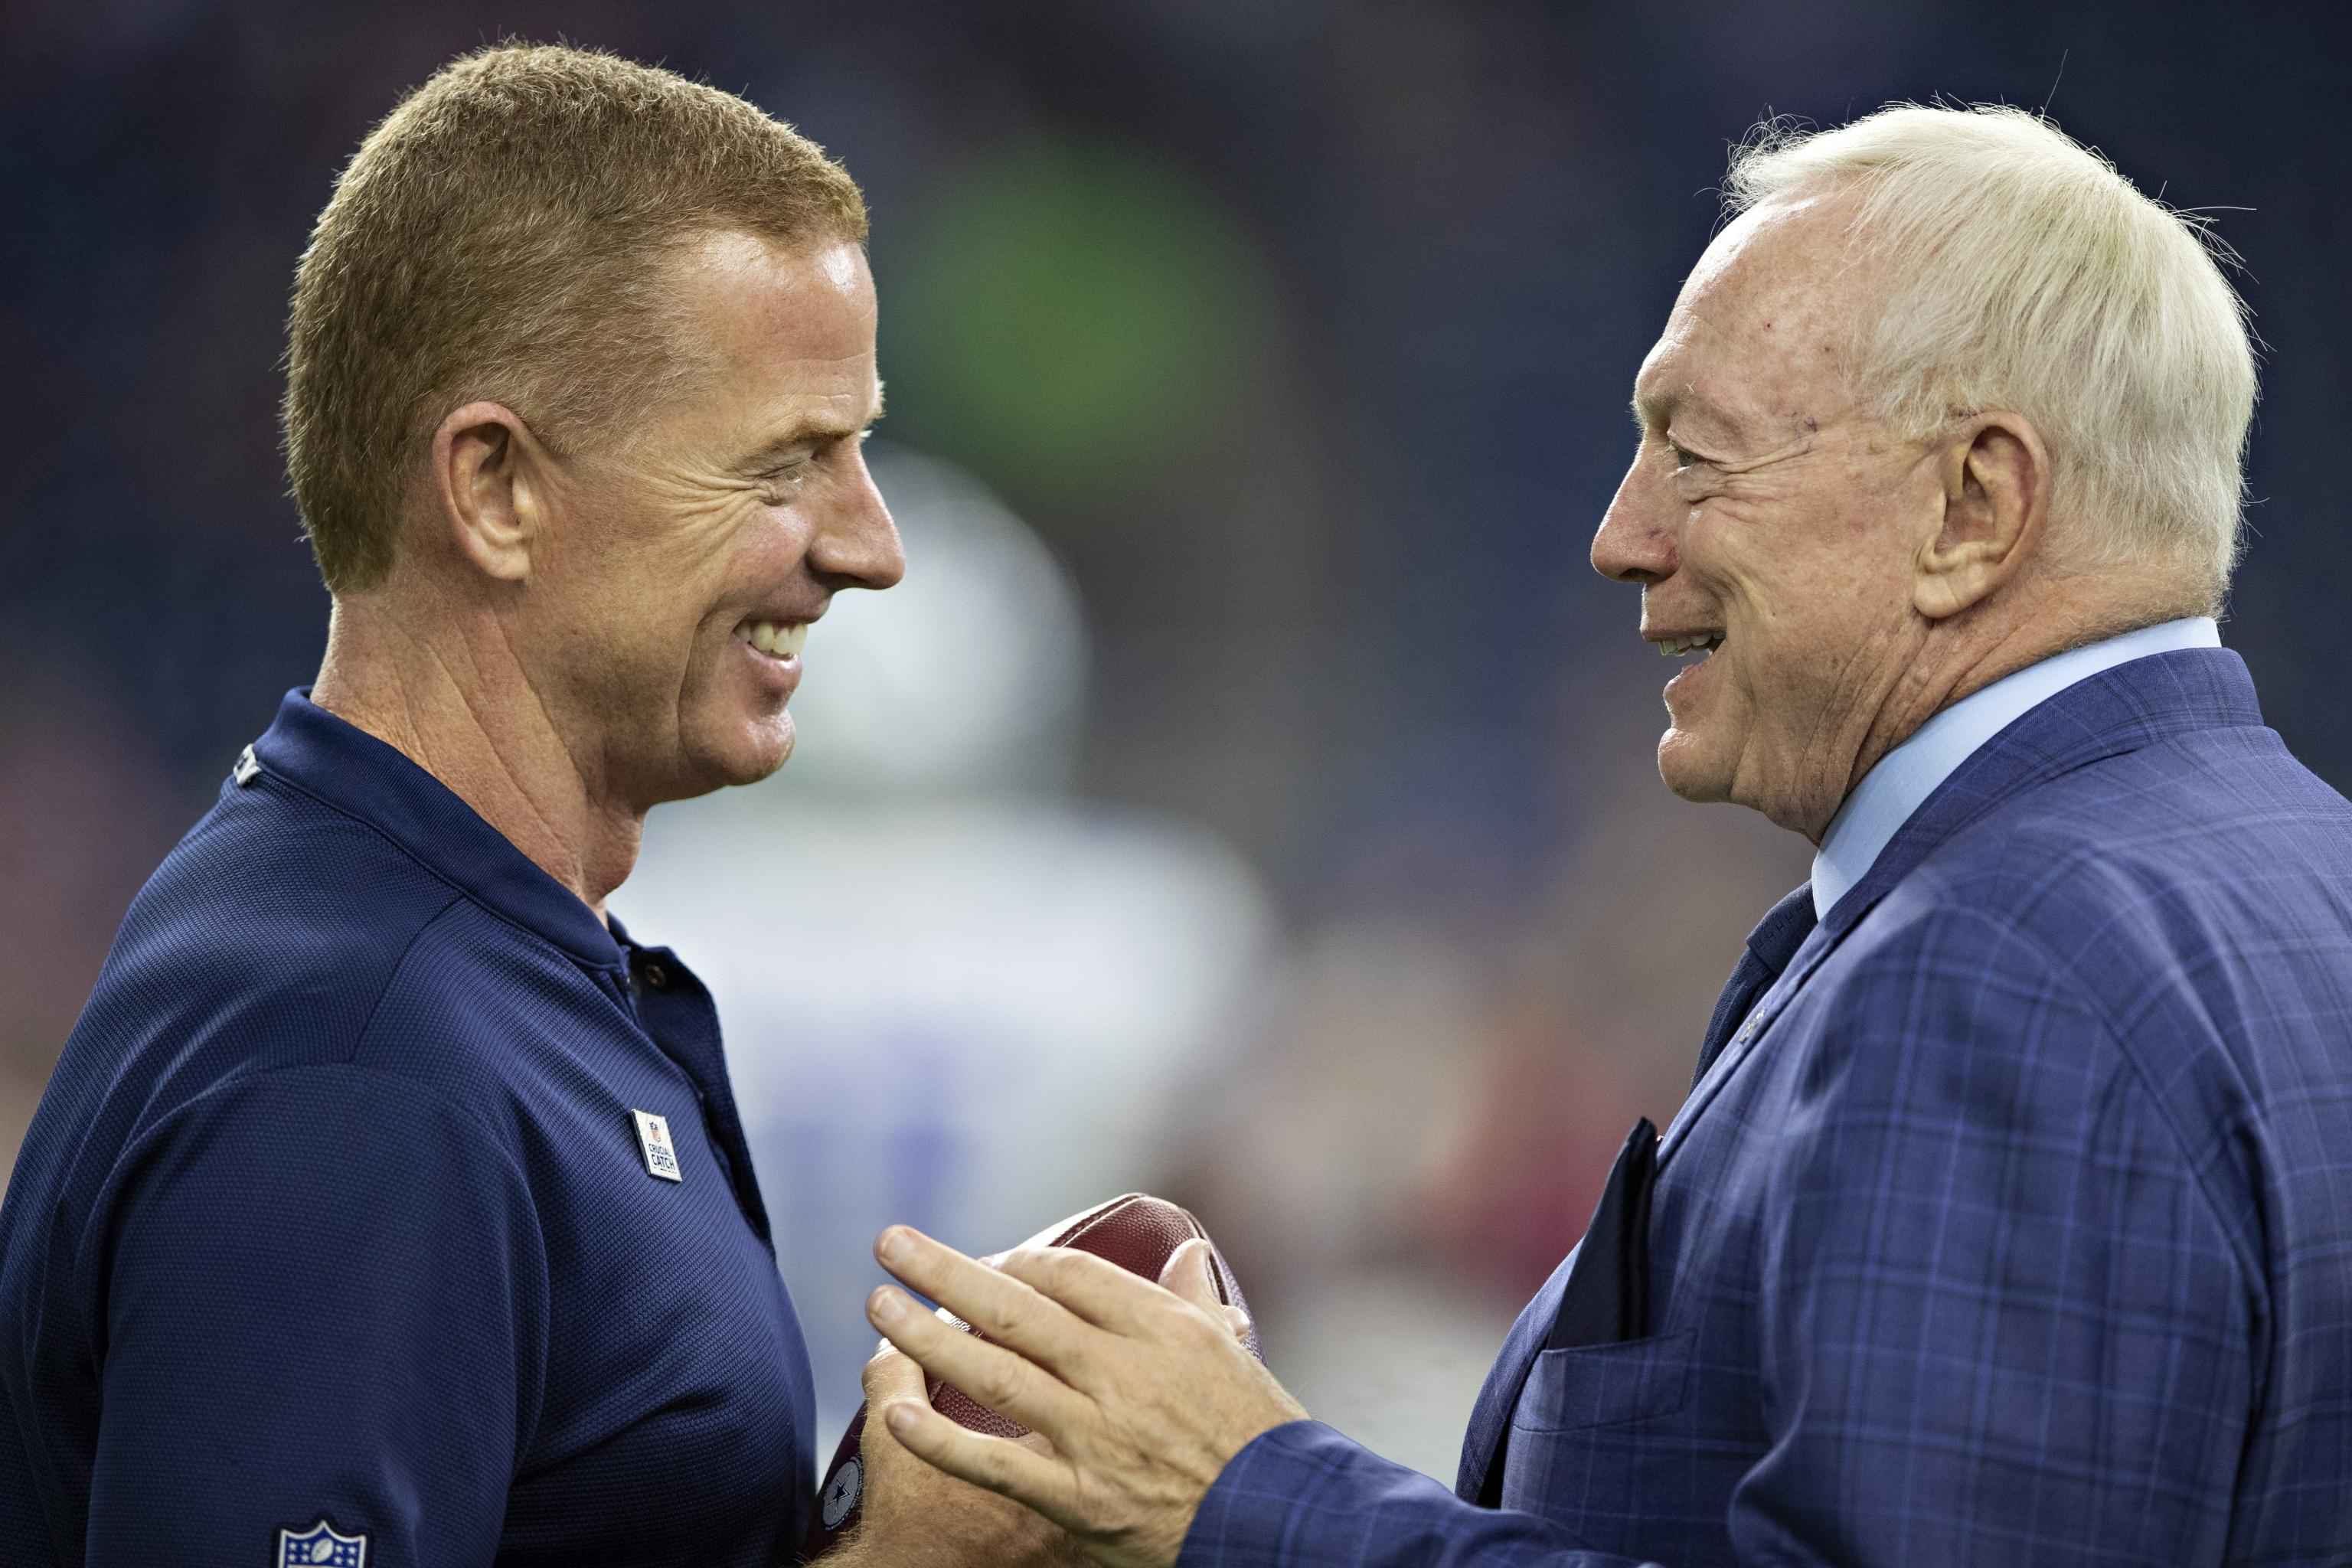 Jason Garrett, Dallas Cowboys… Reunion!